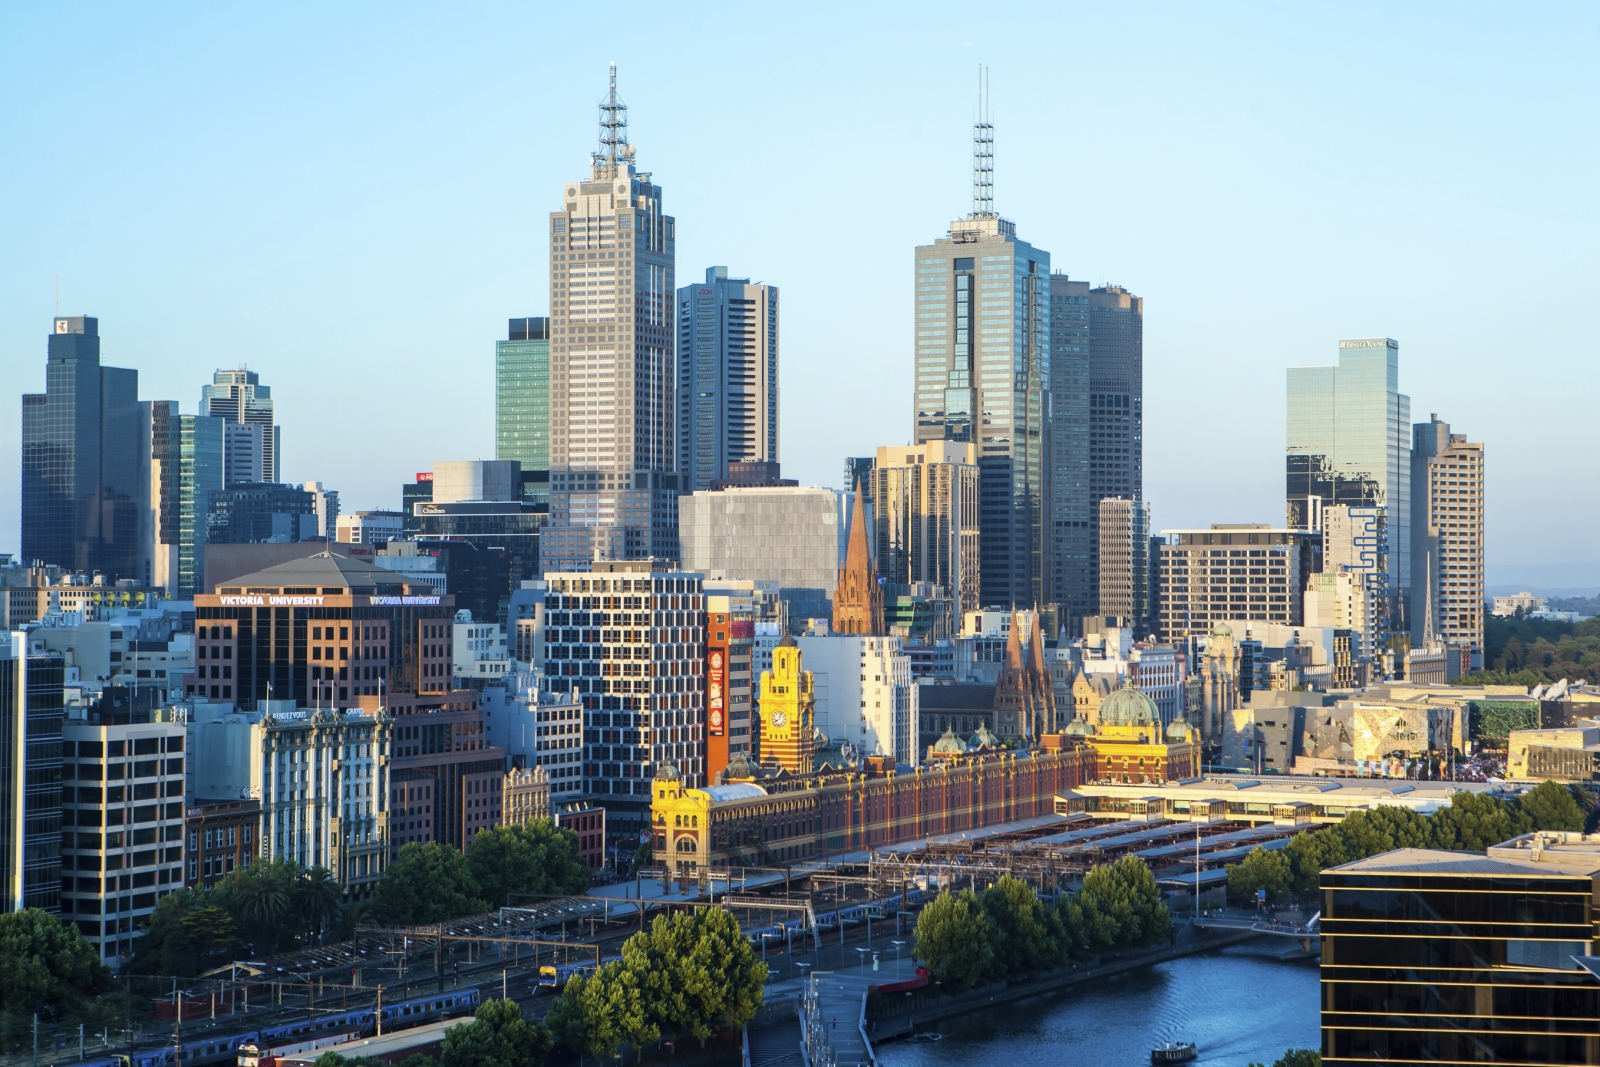 Melbourne 'lost' by Microsoft Bing Maps